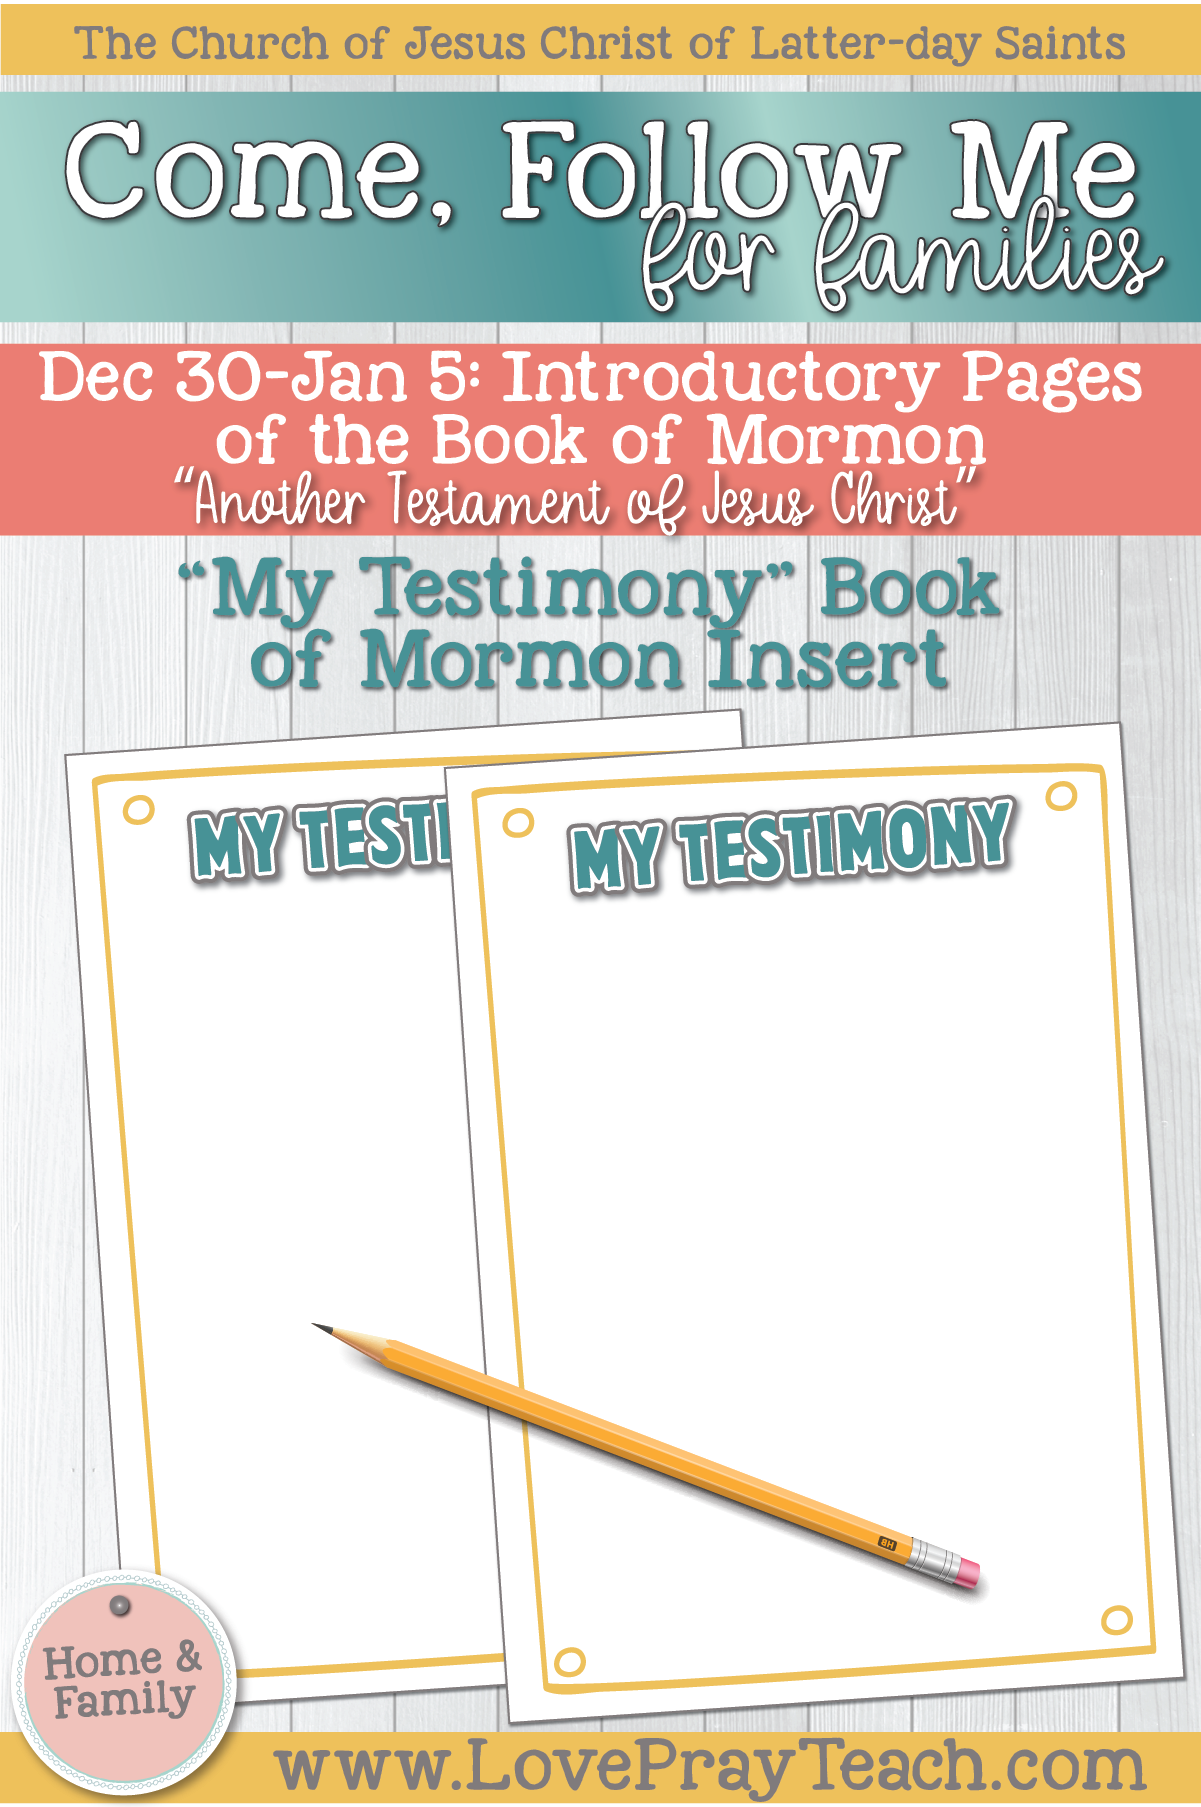 """Come, Follow Me—For Individuals and Families: Book of Mormon 2020 January Week 1: Dec 30– Jan 5 Introductory Pages of The Book of Mormon """"Another Testament of Jesus Christ"""""""